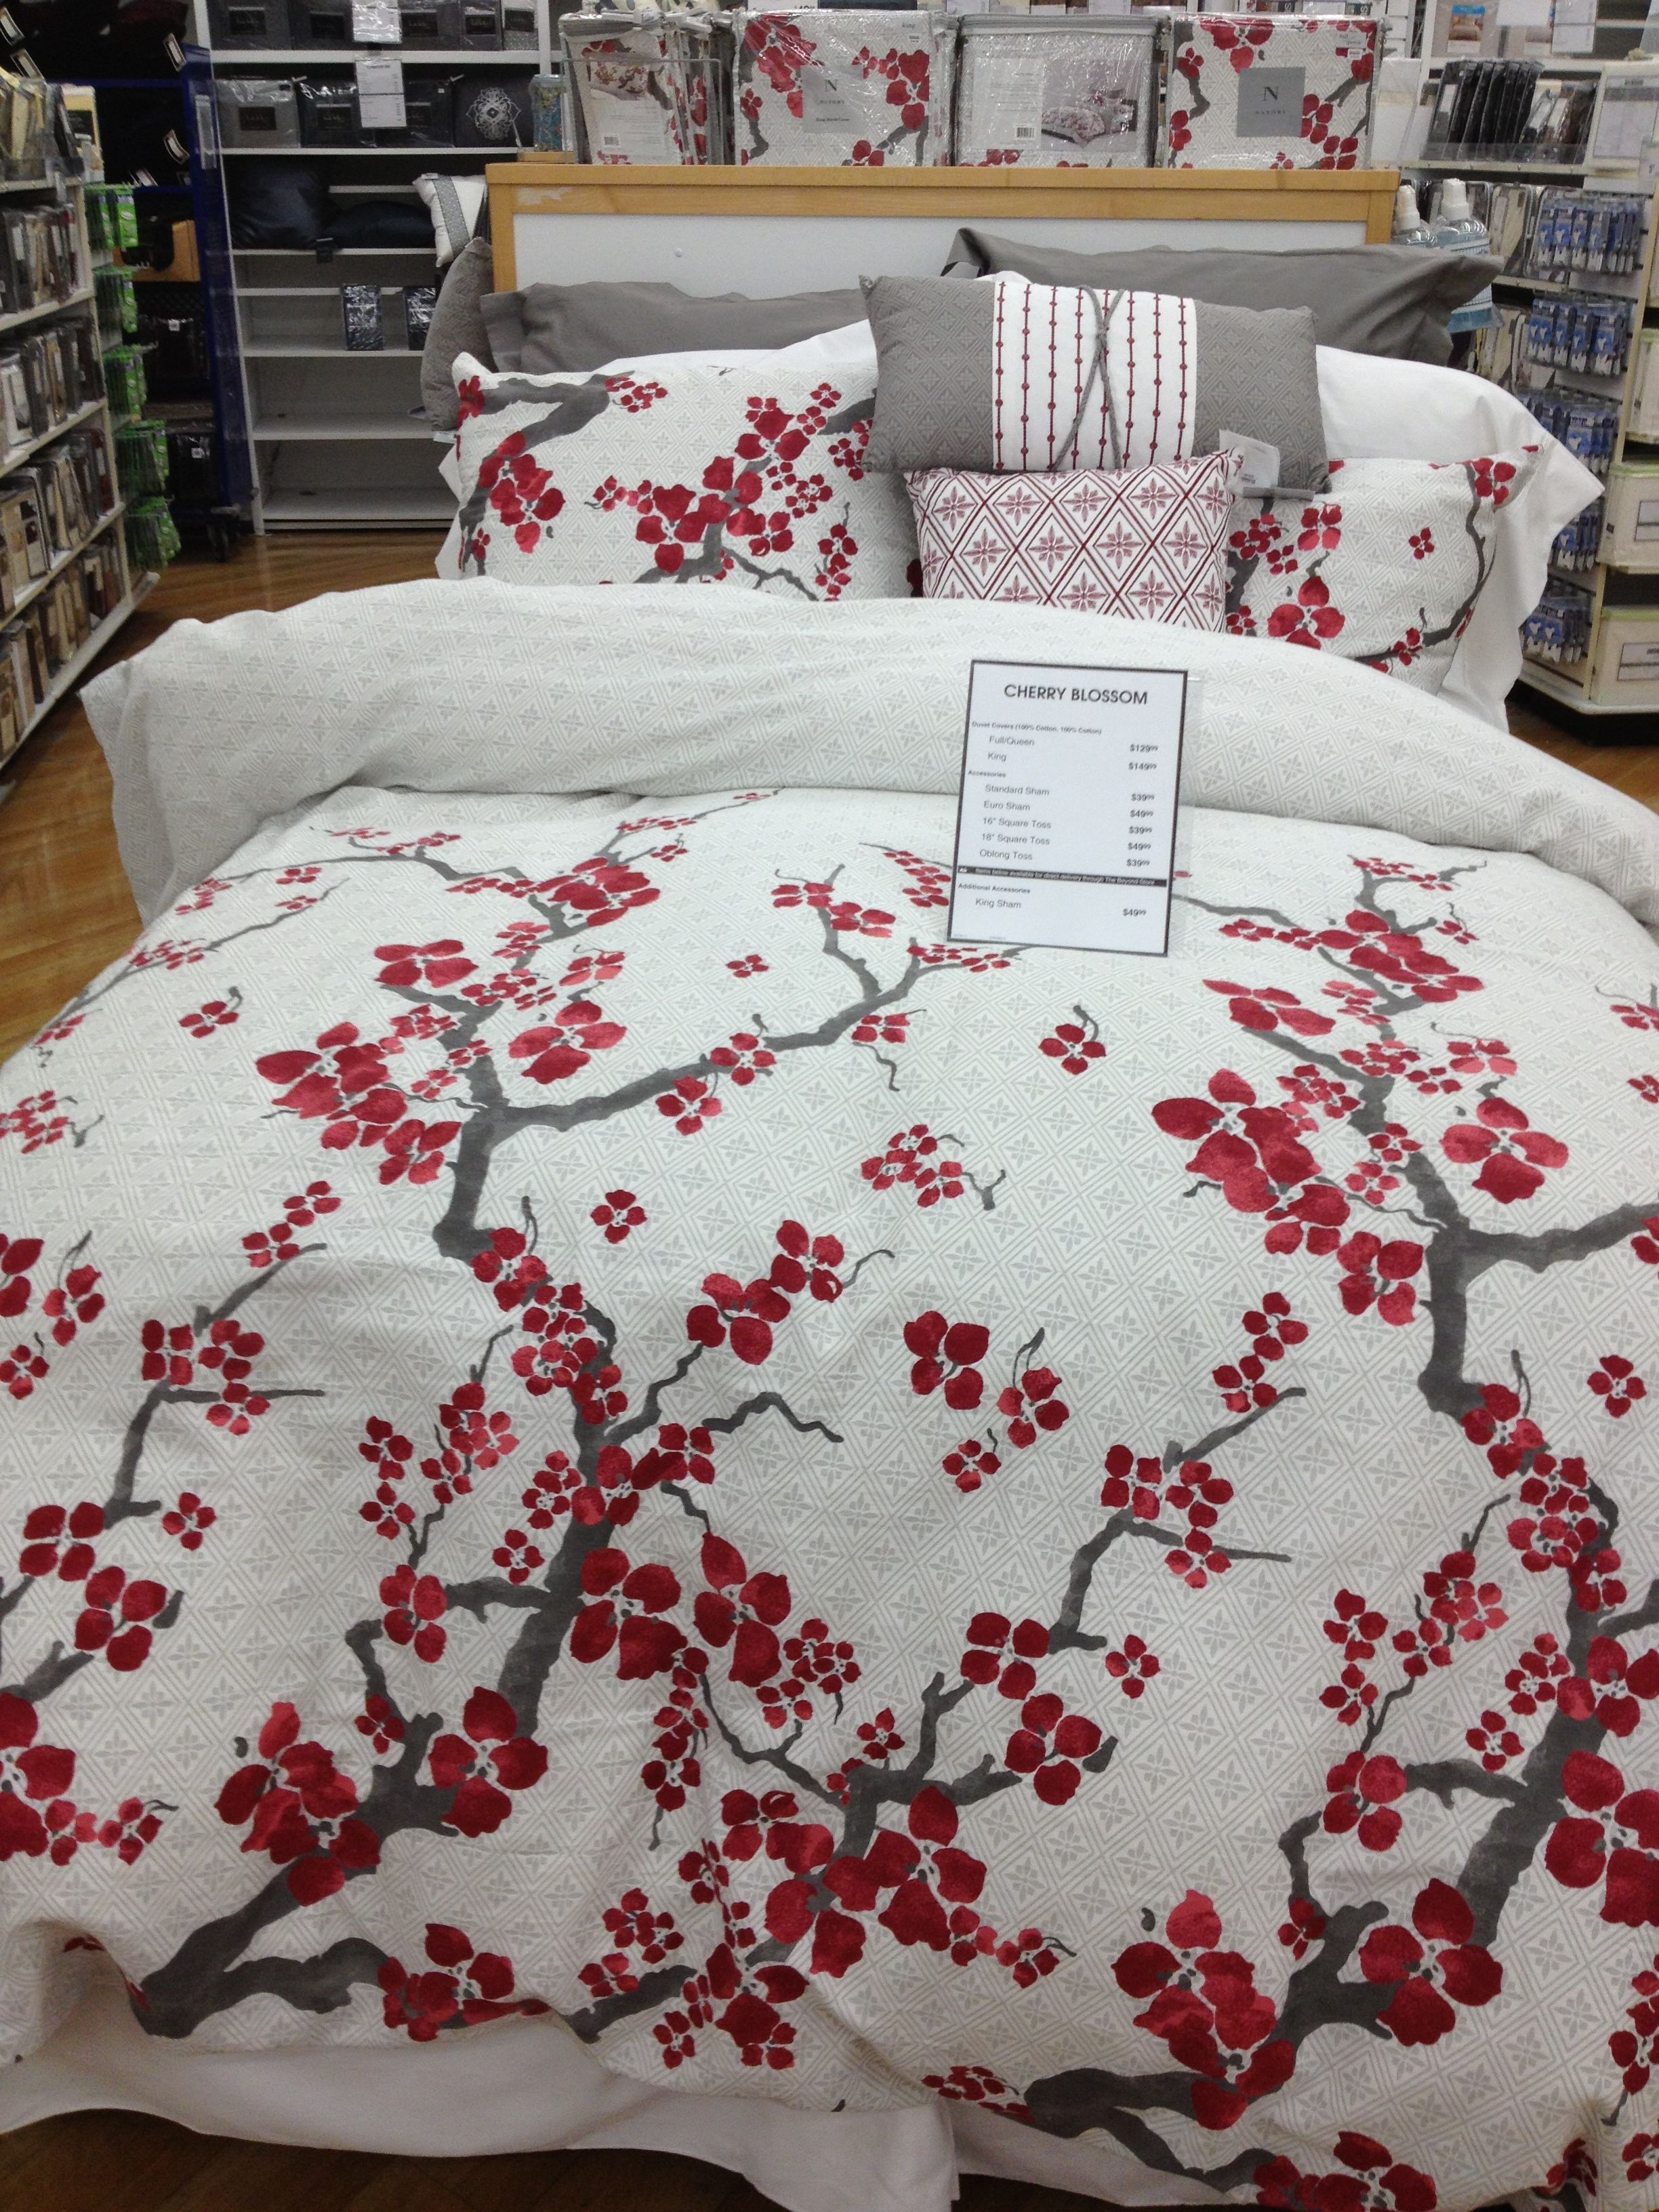 So In Love Cherry Blossom Duvet Comforter Set By N Natori In White Red Grey As Seen Here At Bed Bath Be Red Bedroom Themes Japanese Bedroom Bedroom Red